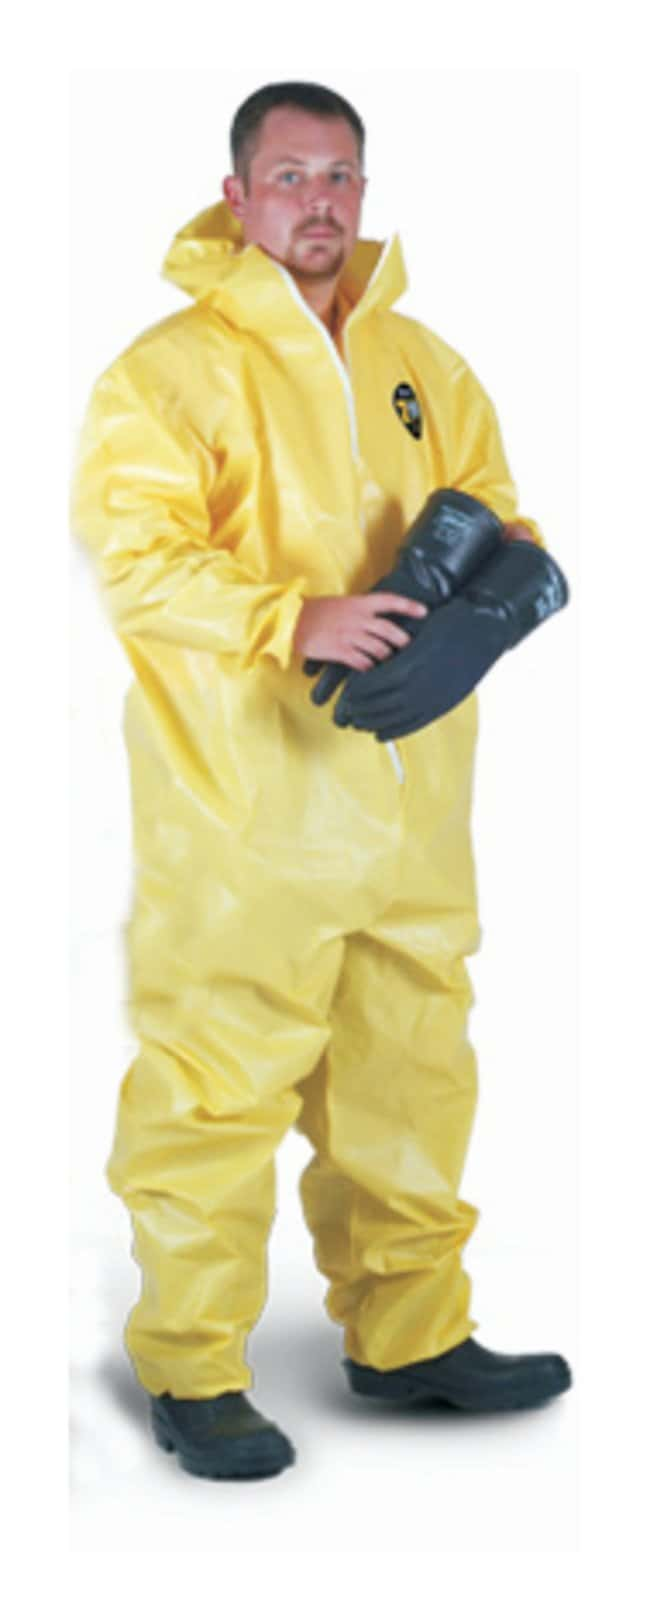 Kappler Zytron 100 Chemical-Resistant Coveralls Bound Seams; Collar, elastic